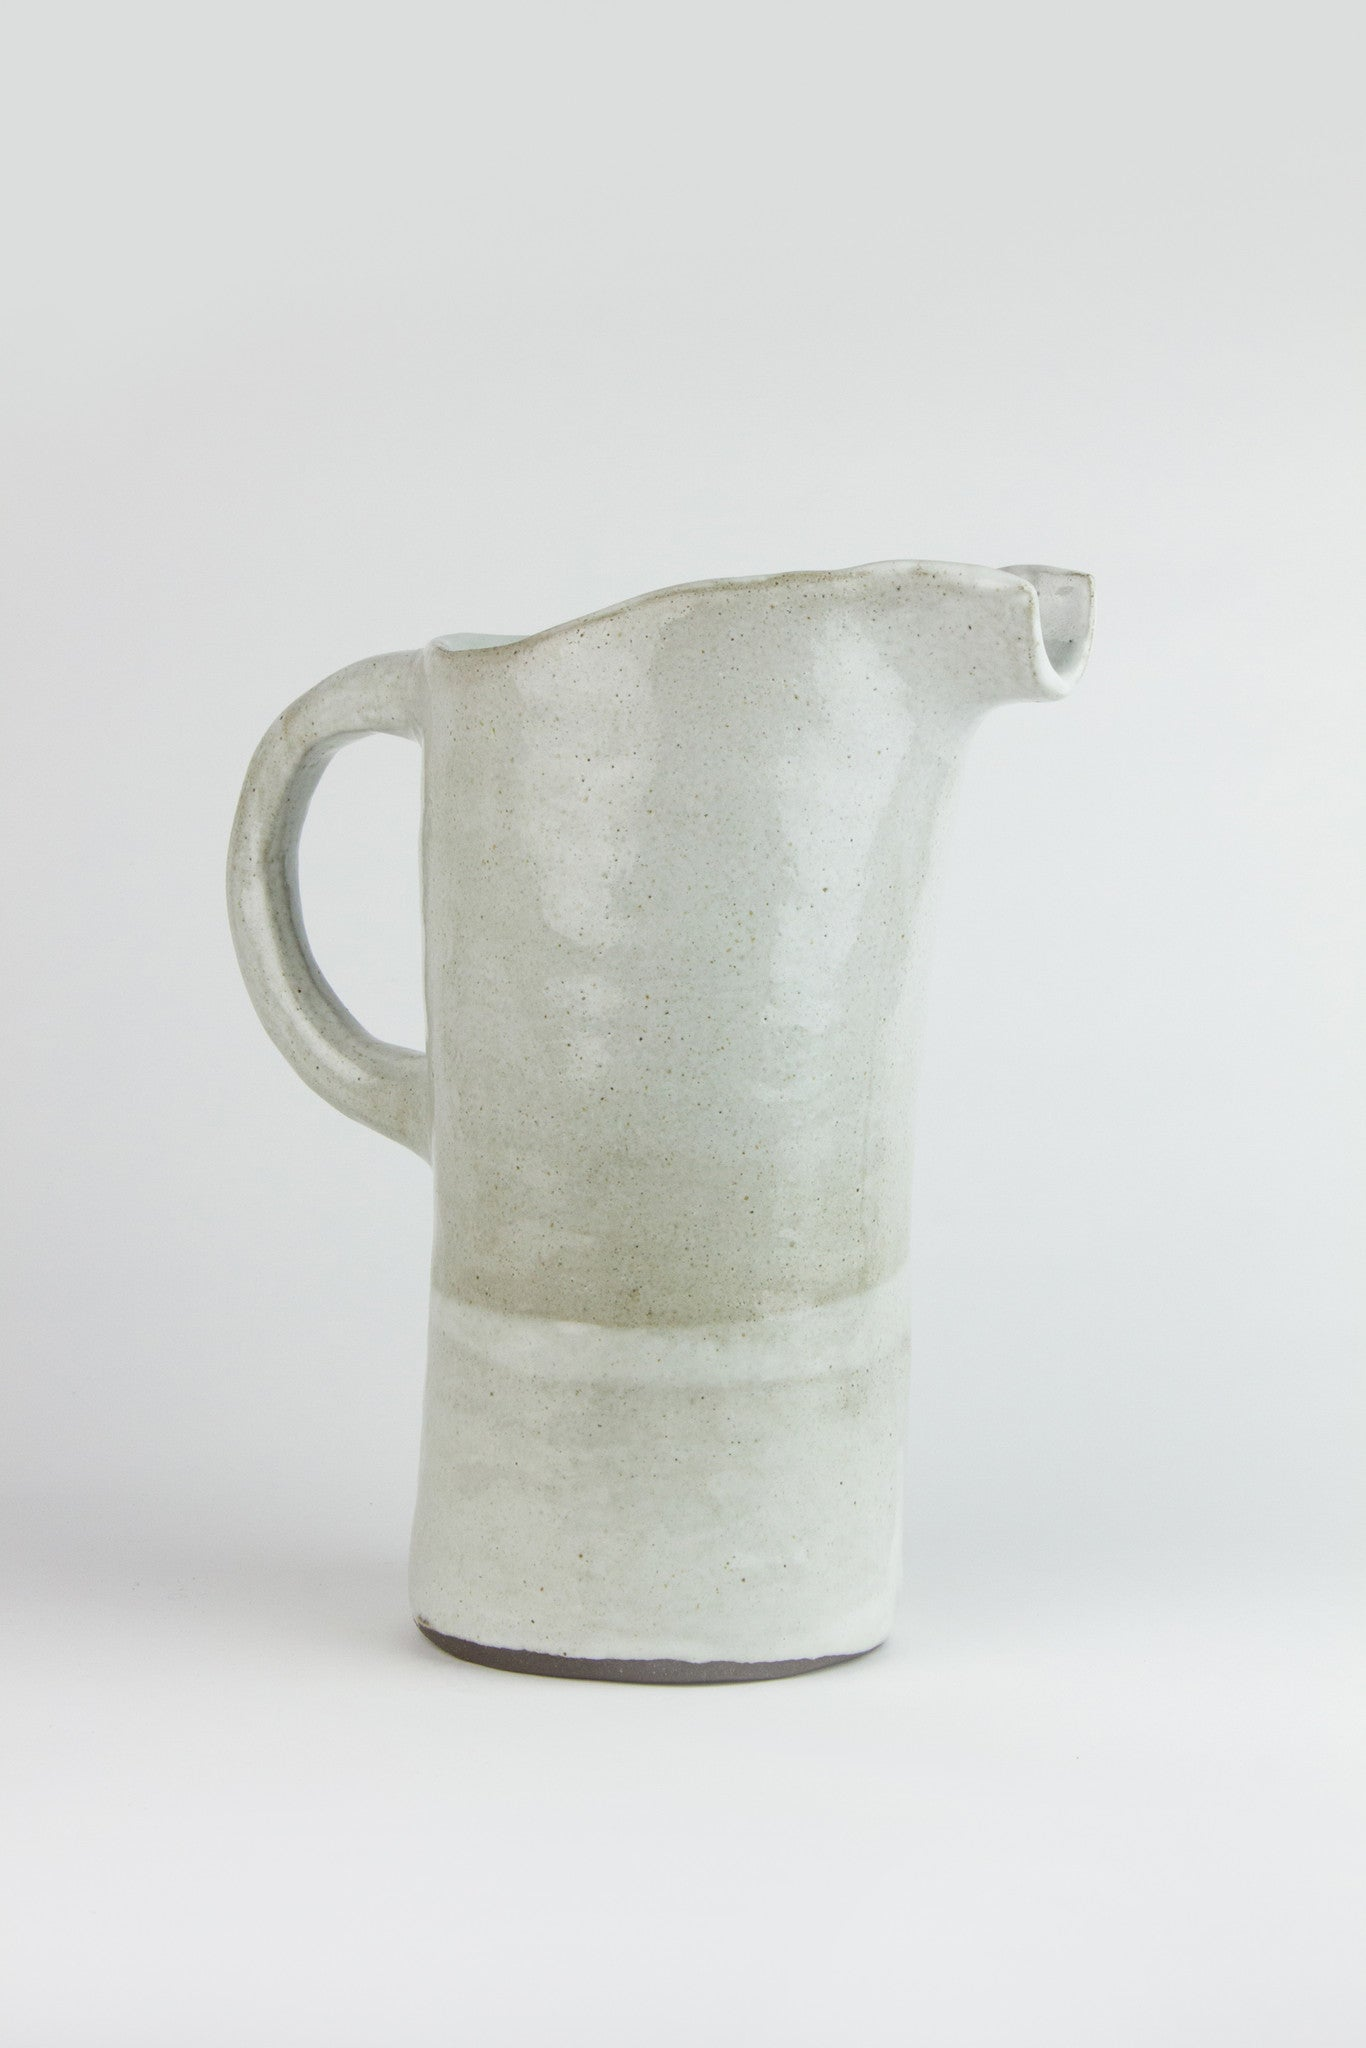 CARMEN D'APOLLONIO TALL PITCHER VASE